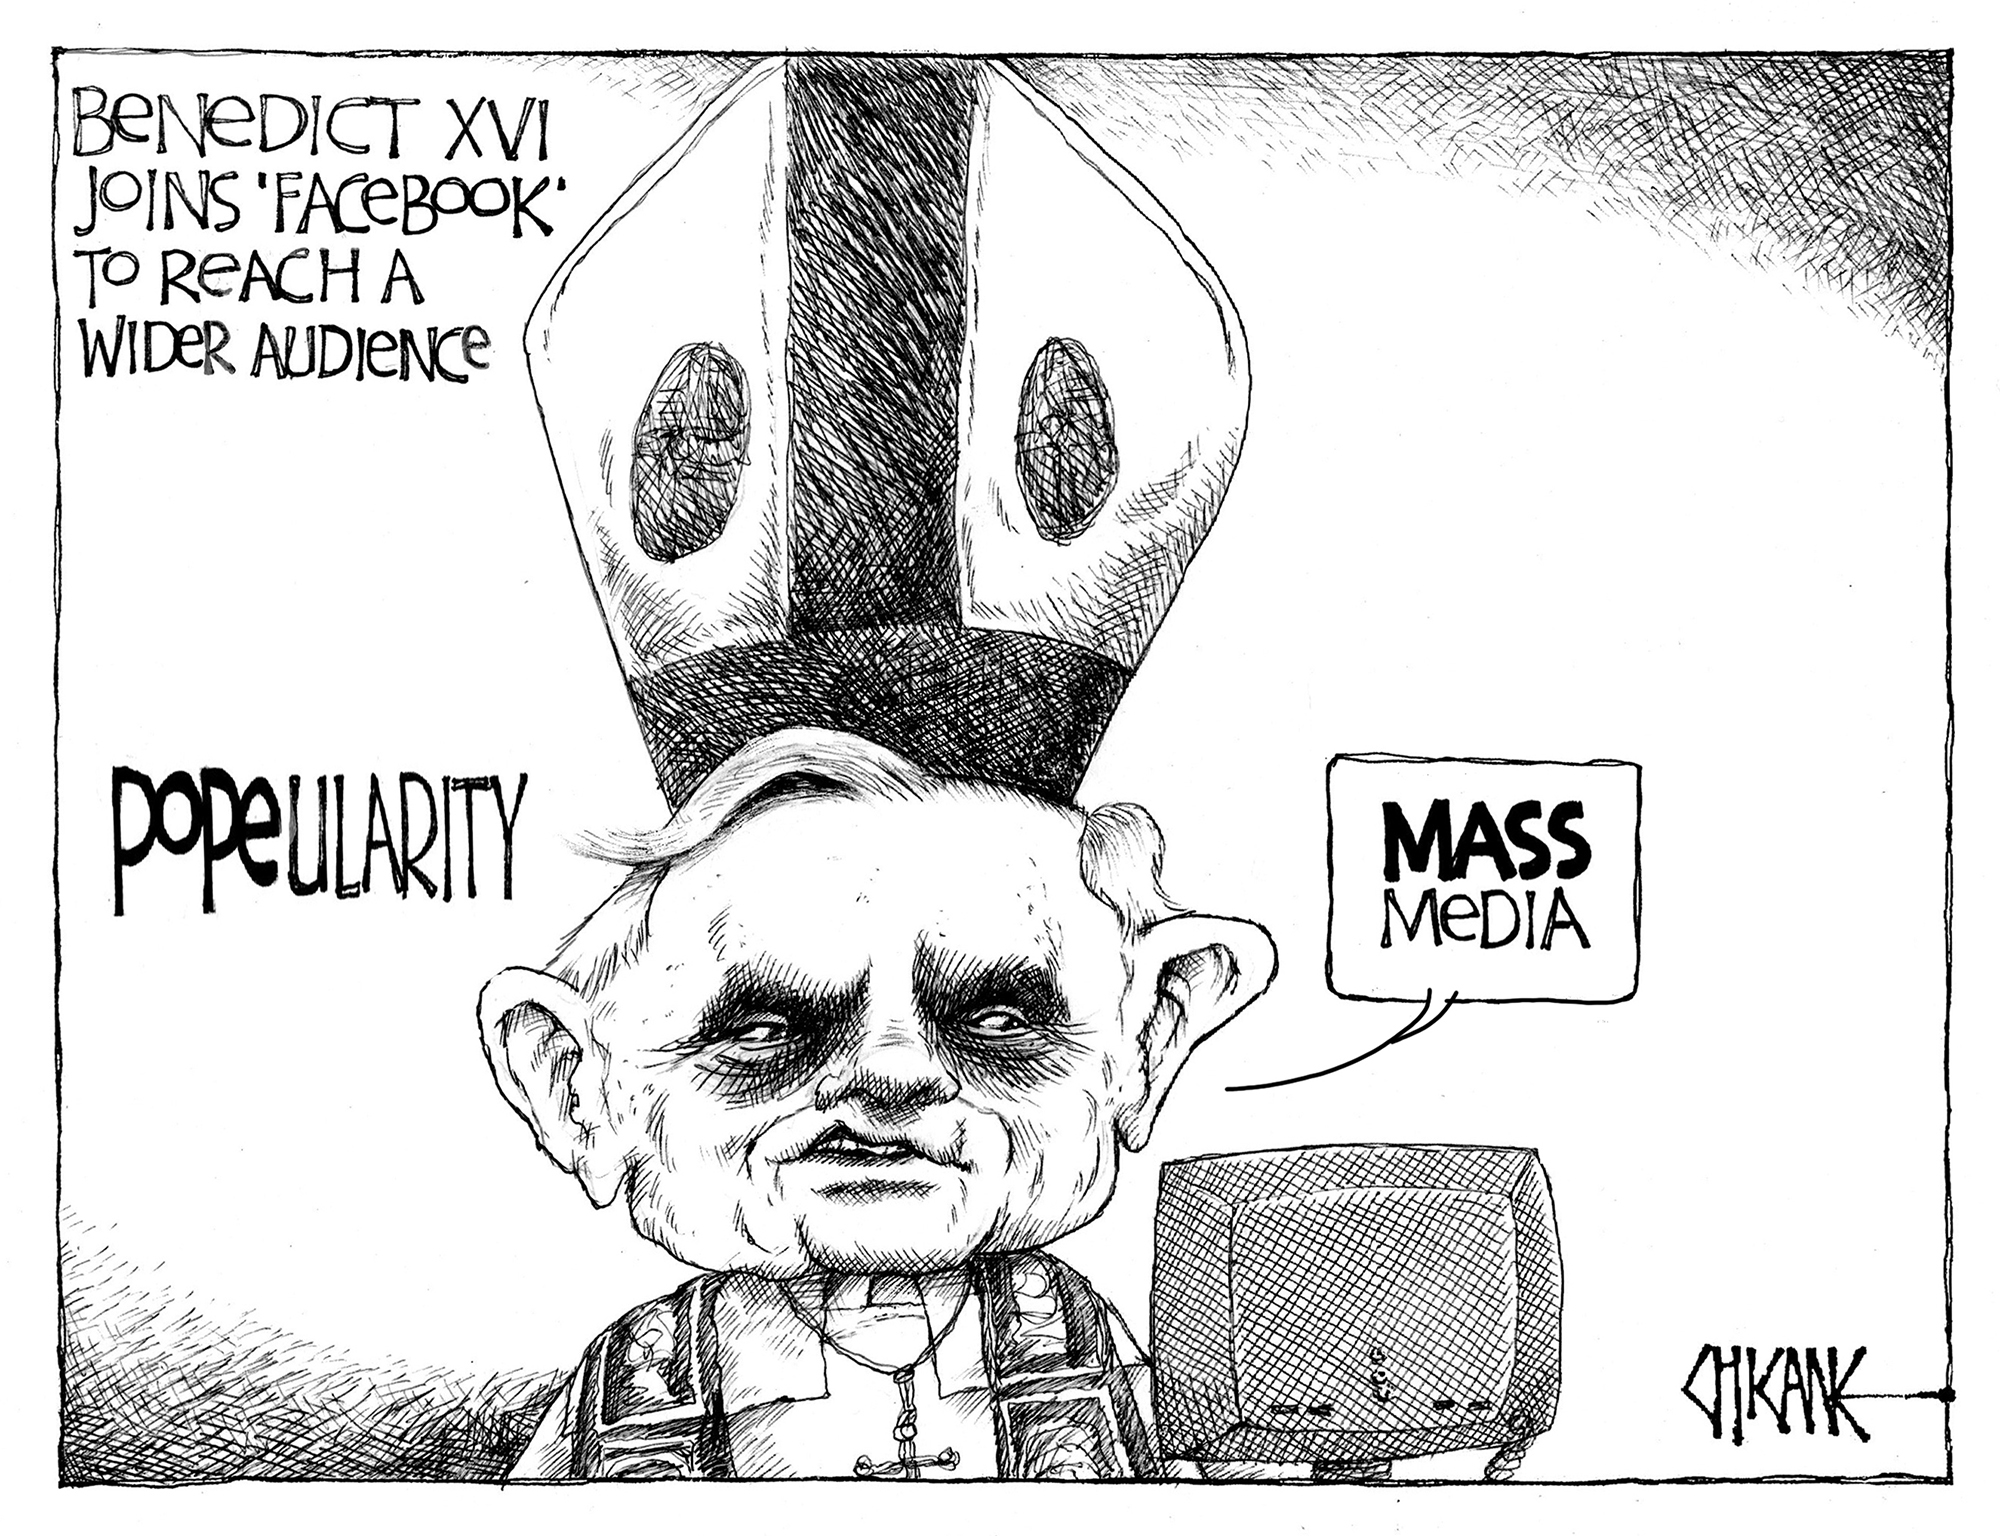 The Pope joins Facebook. Cartoon by Chicane